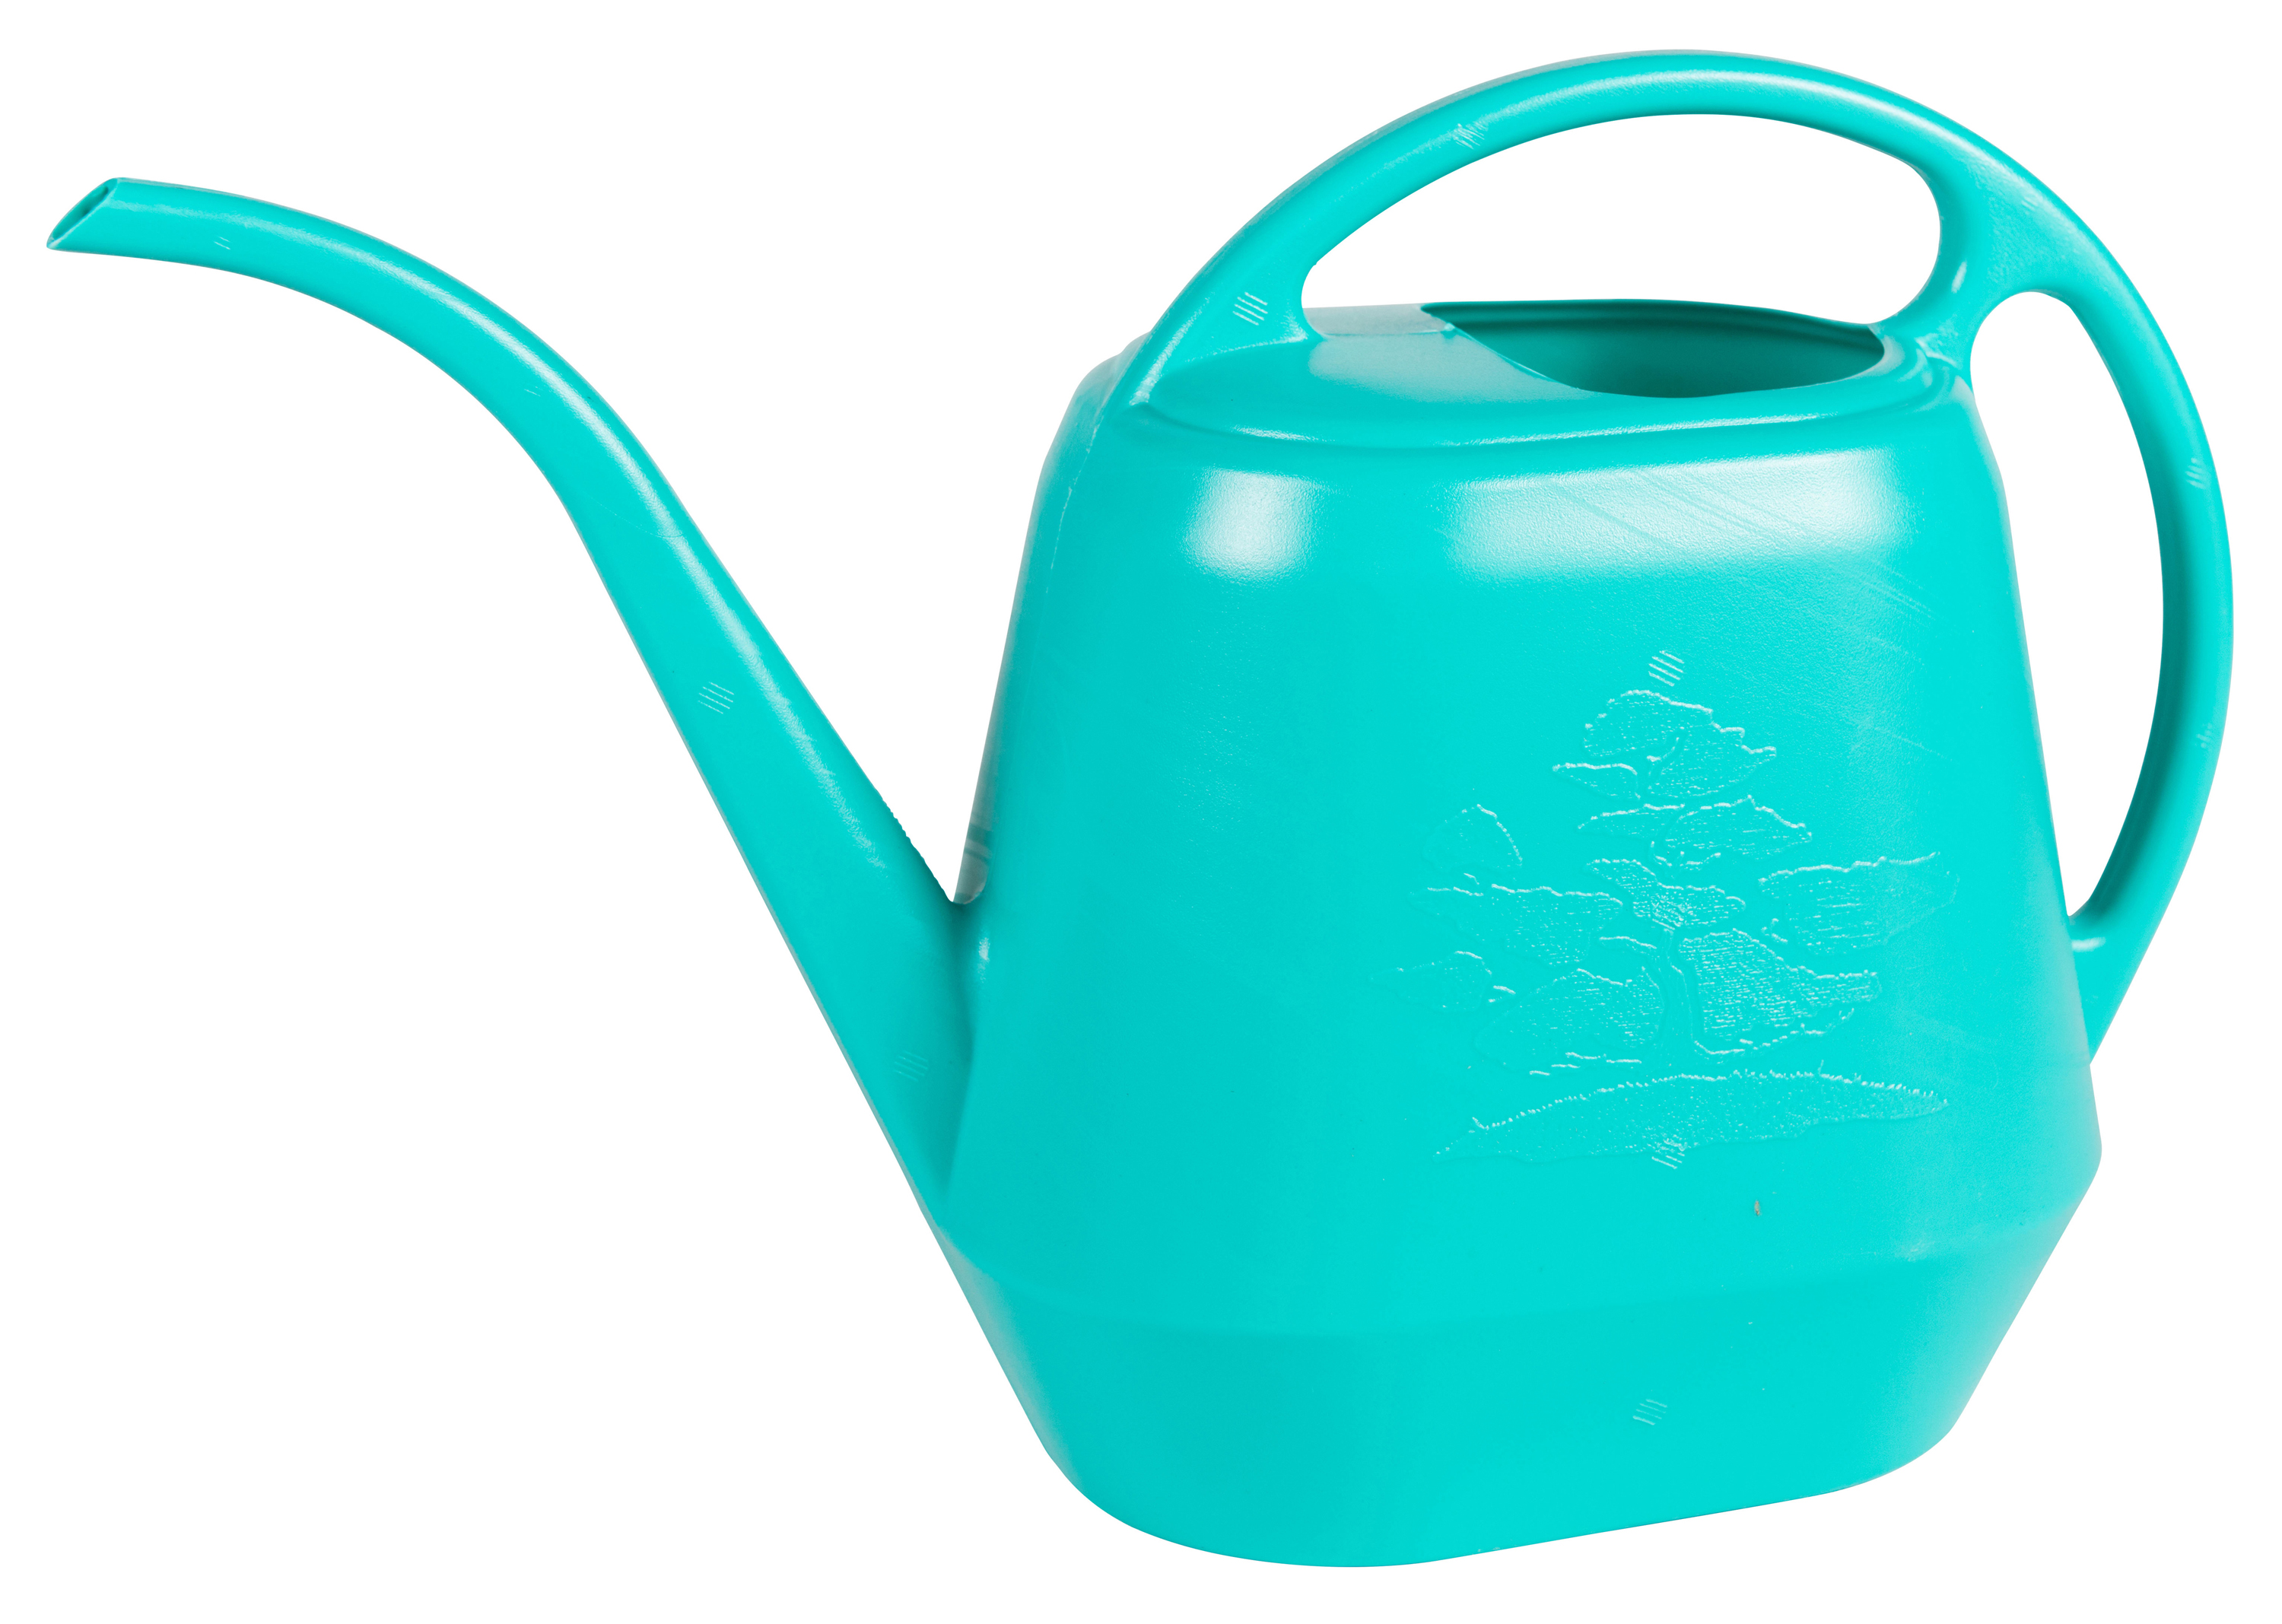 Bloem Aqua Rite Watering Can 144 oz Calypso by Bloem